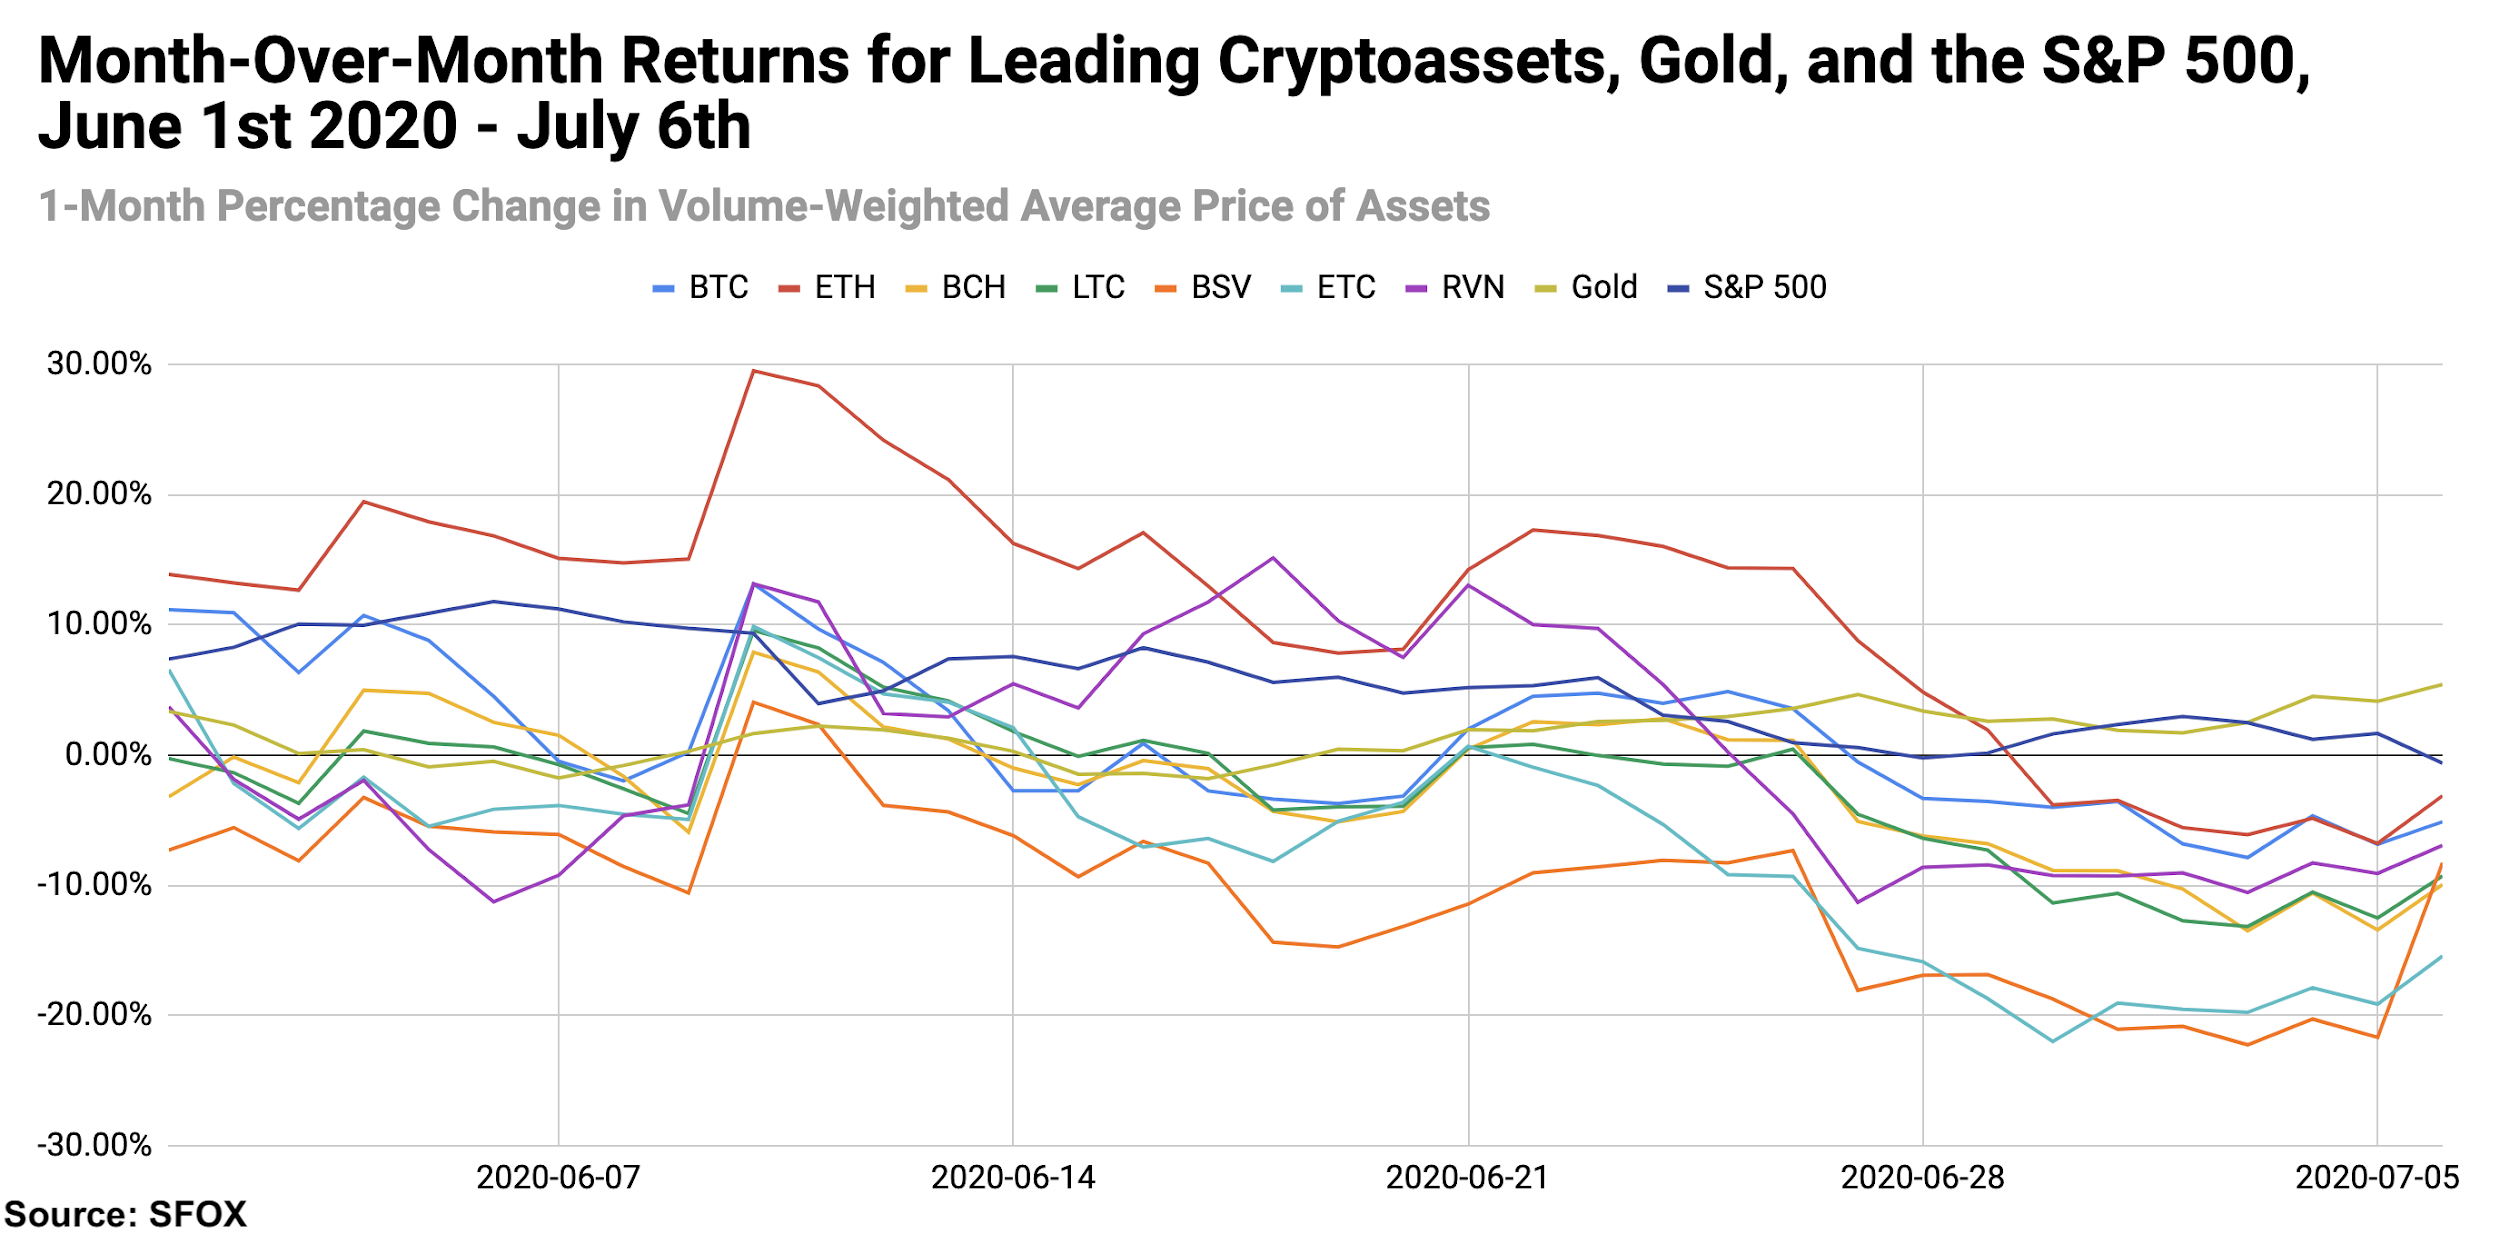 Bitcoin crypto S&P 500 gold monthly returns data July 2020.